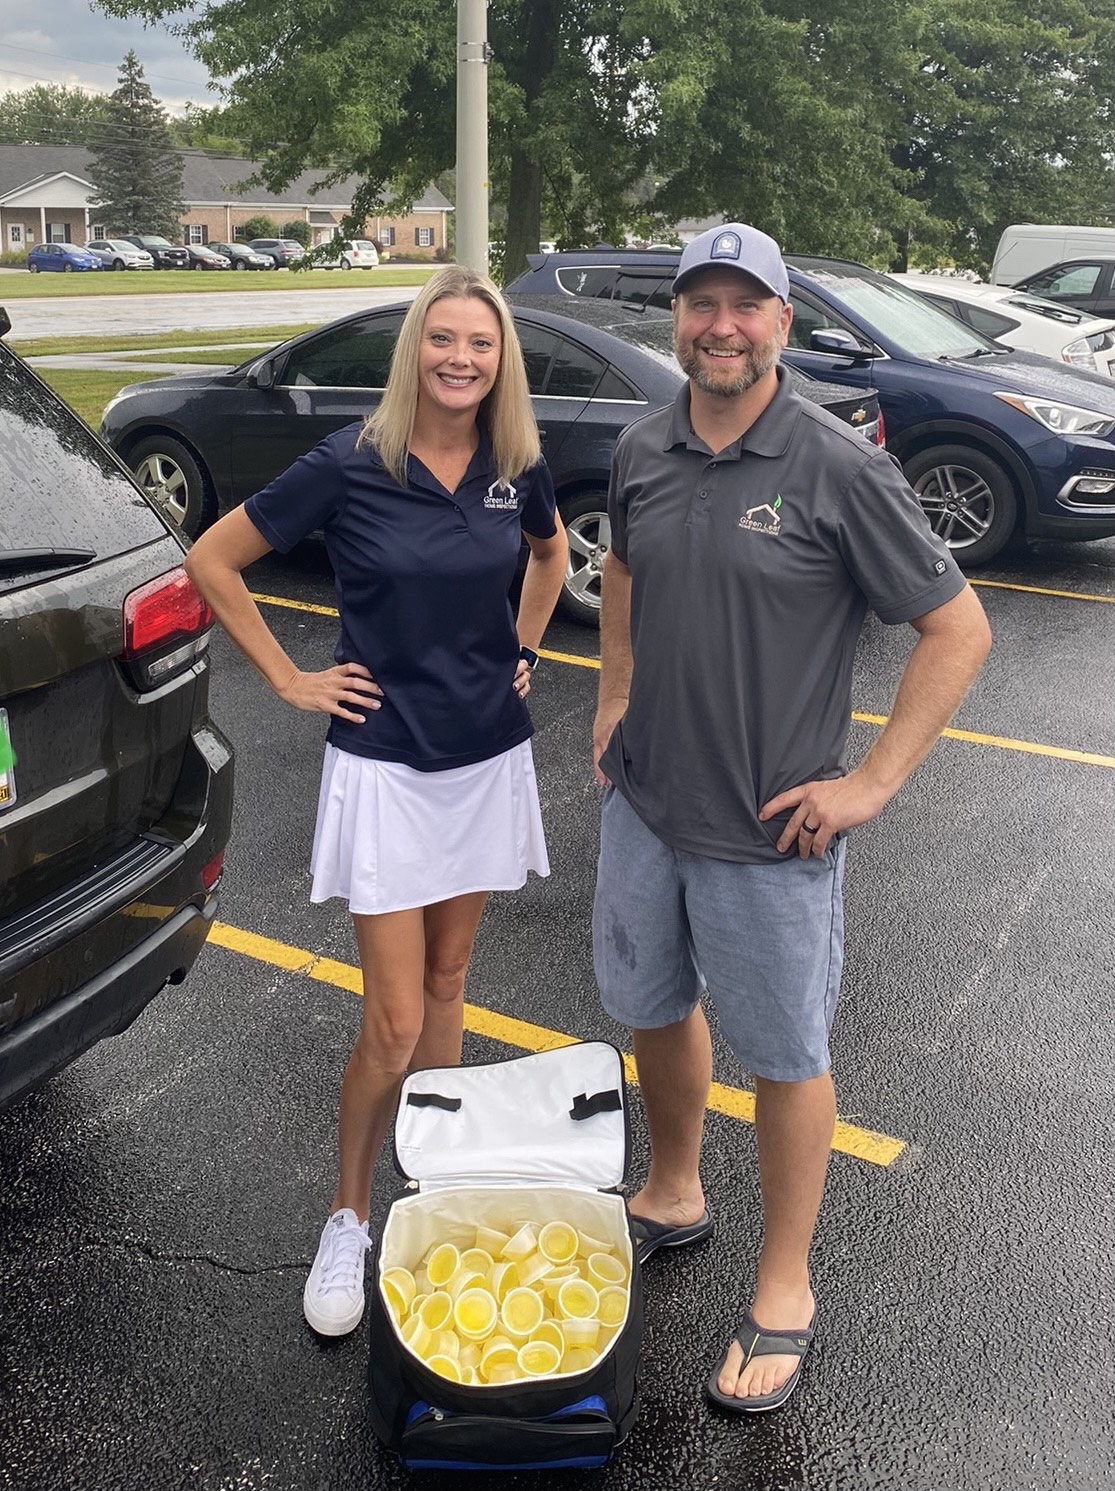 It's the first cancellation thanks to Mother Nature. The Green Leaf Home Inspections team was ready to make some connections this morning at the 2021 LGAAR Golf Scramble. We can't wait to see you when it's rescheduled!